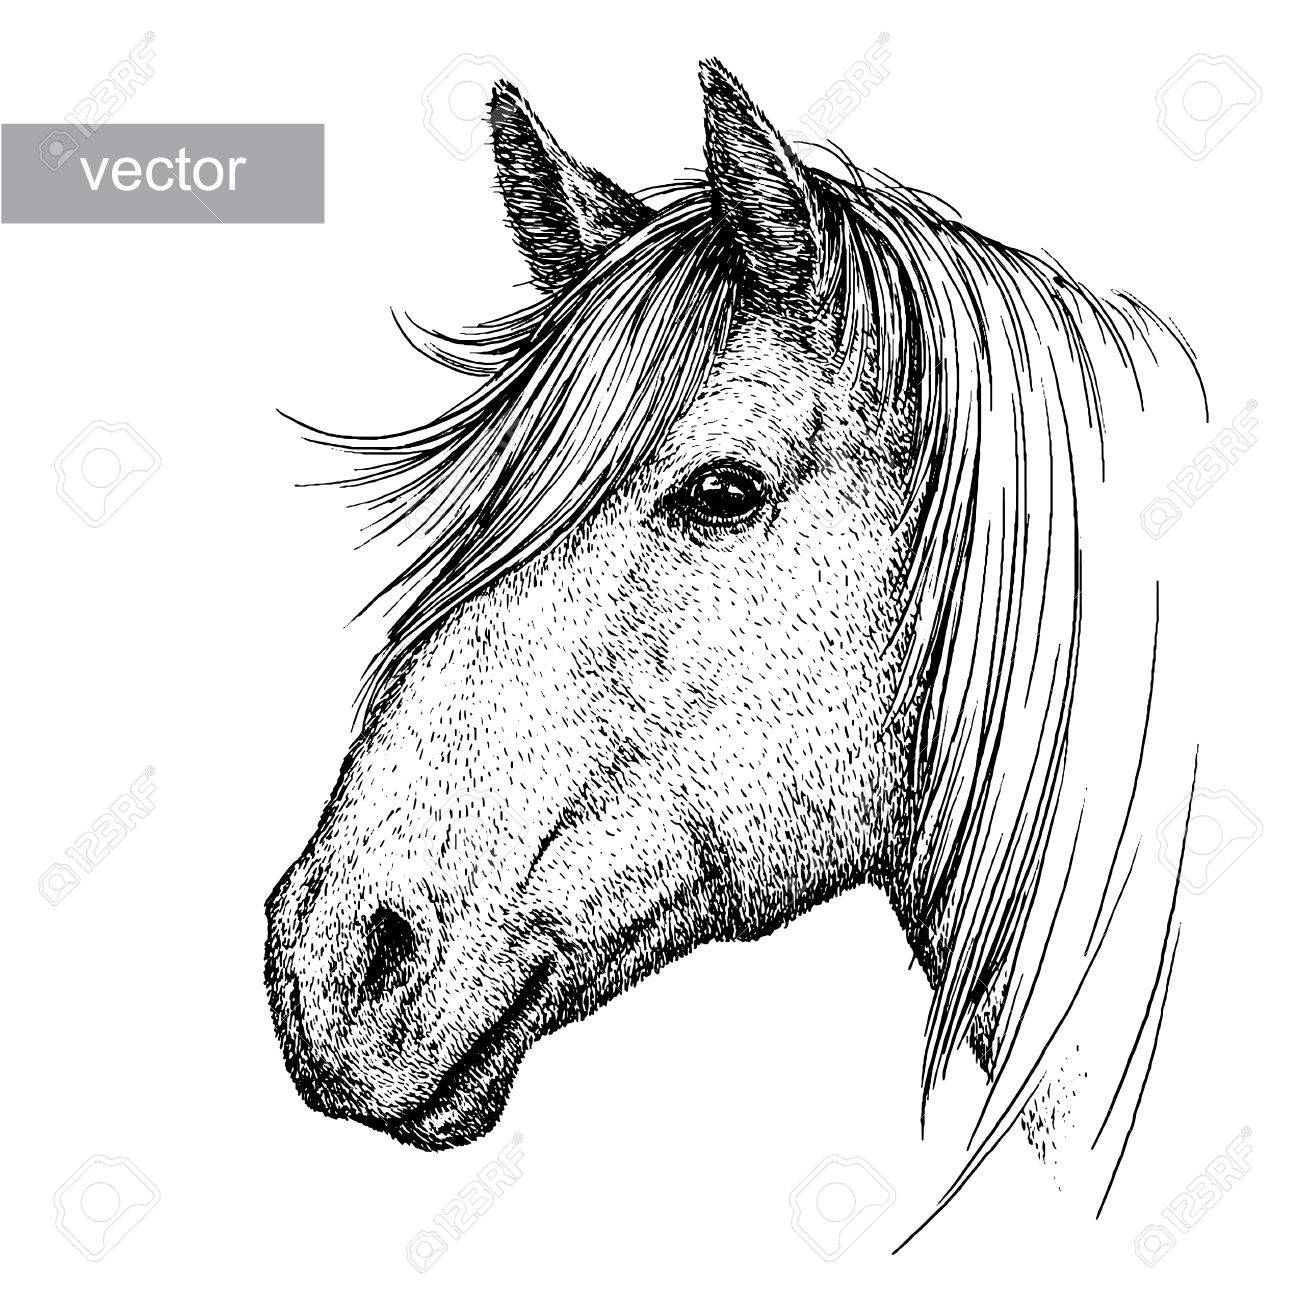 1300x1300 Engrave Isolated Horse Vector Illustration Sketch. Linear Art